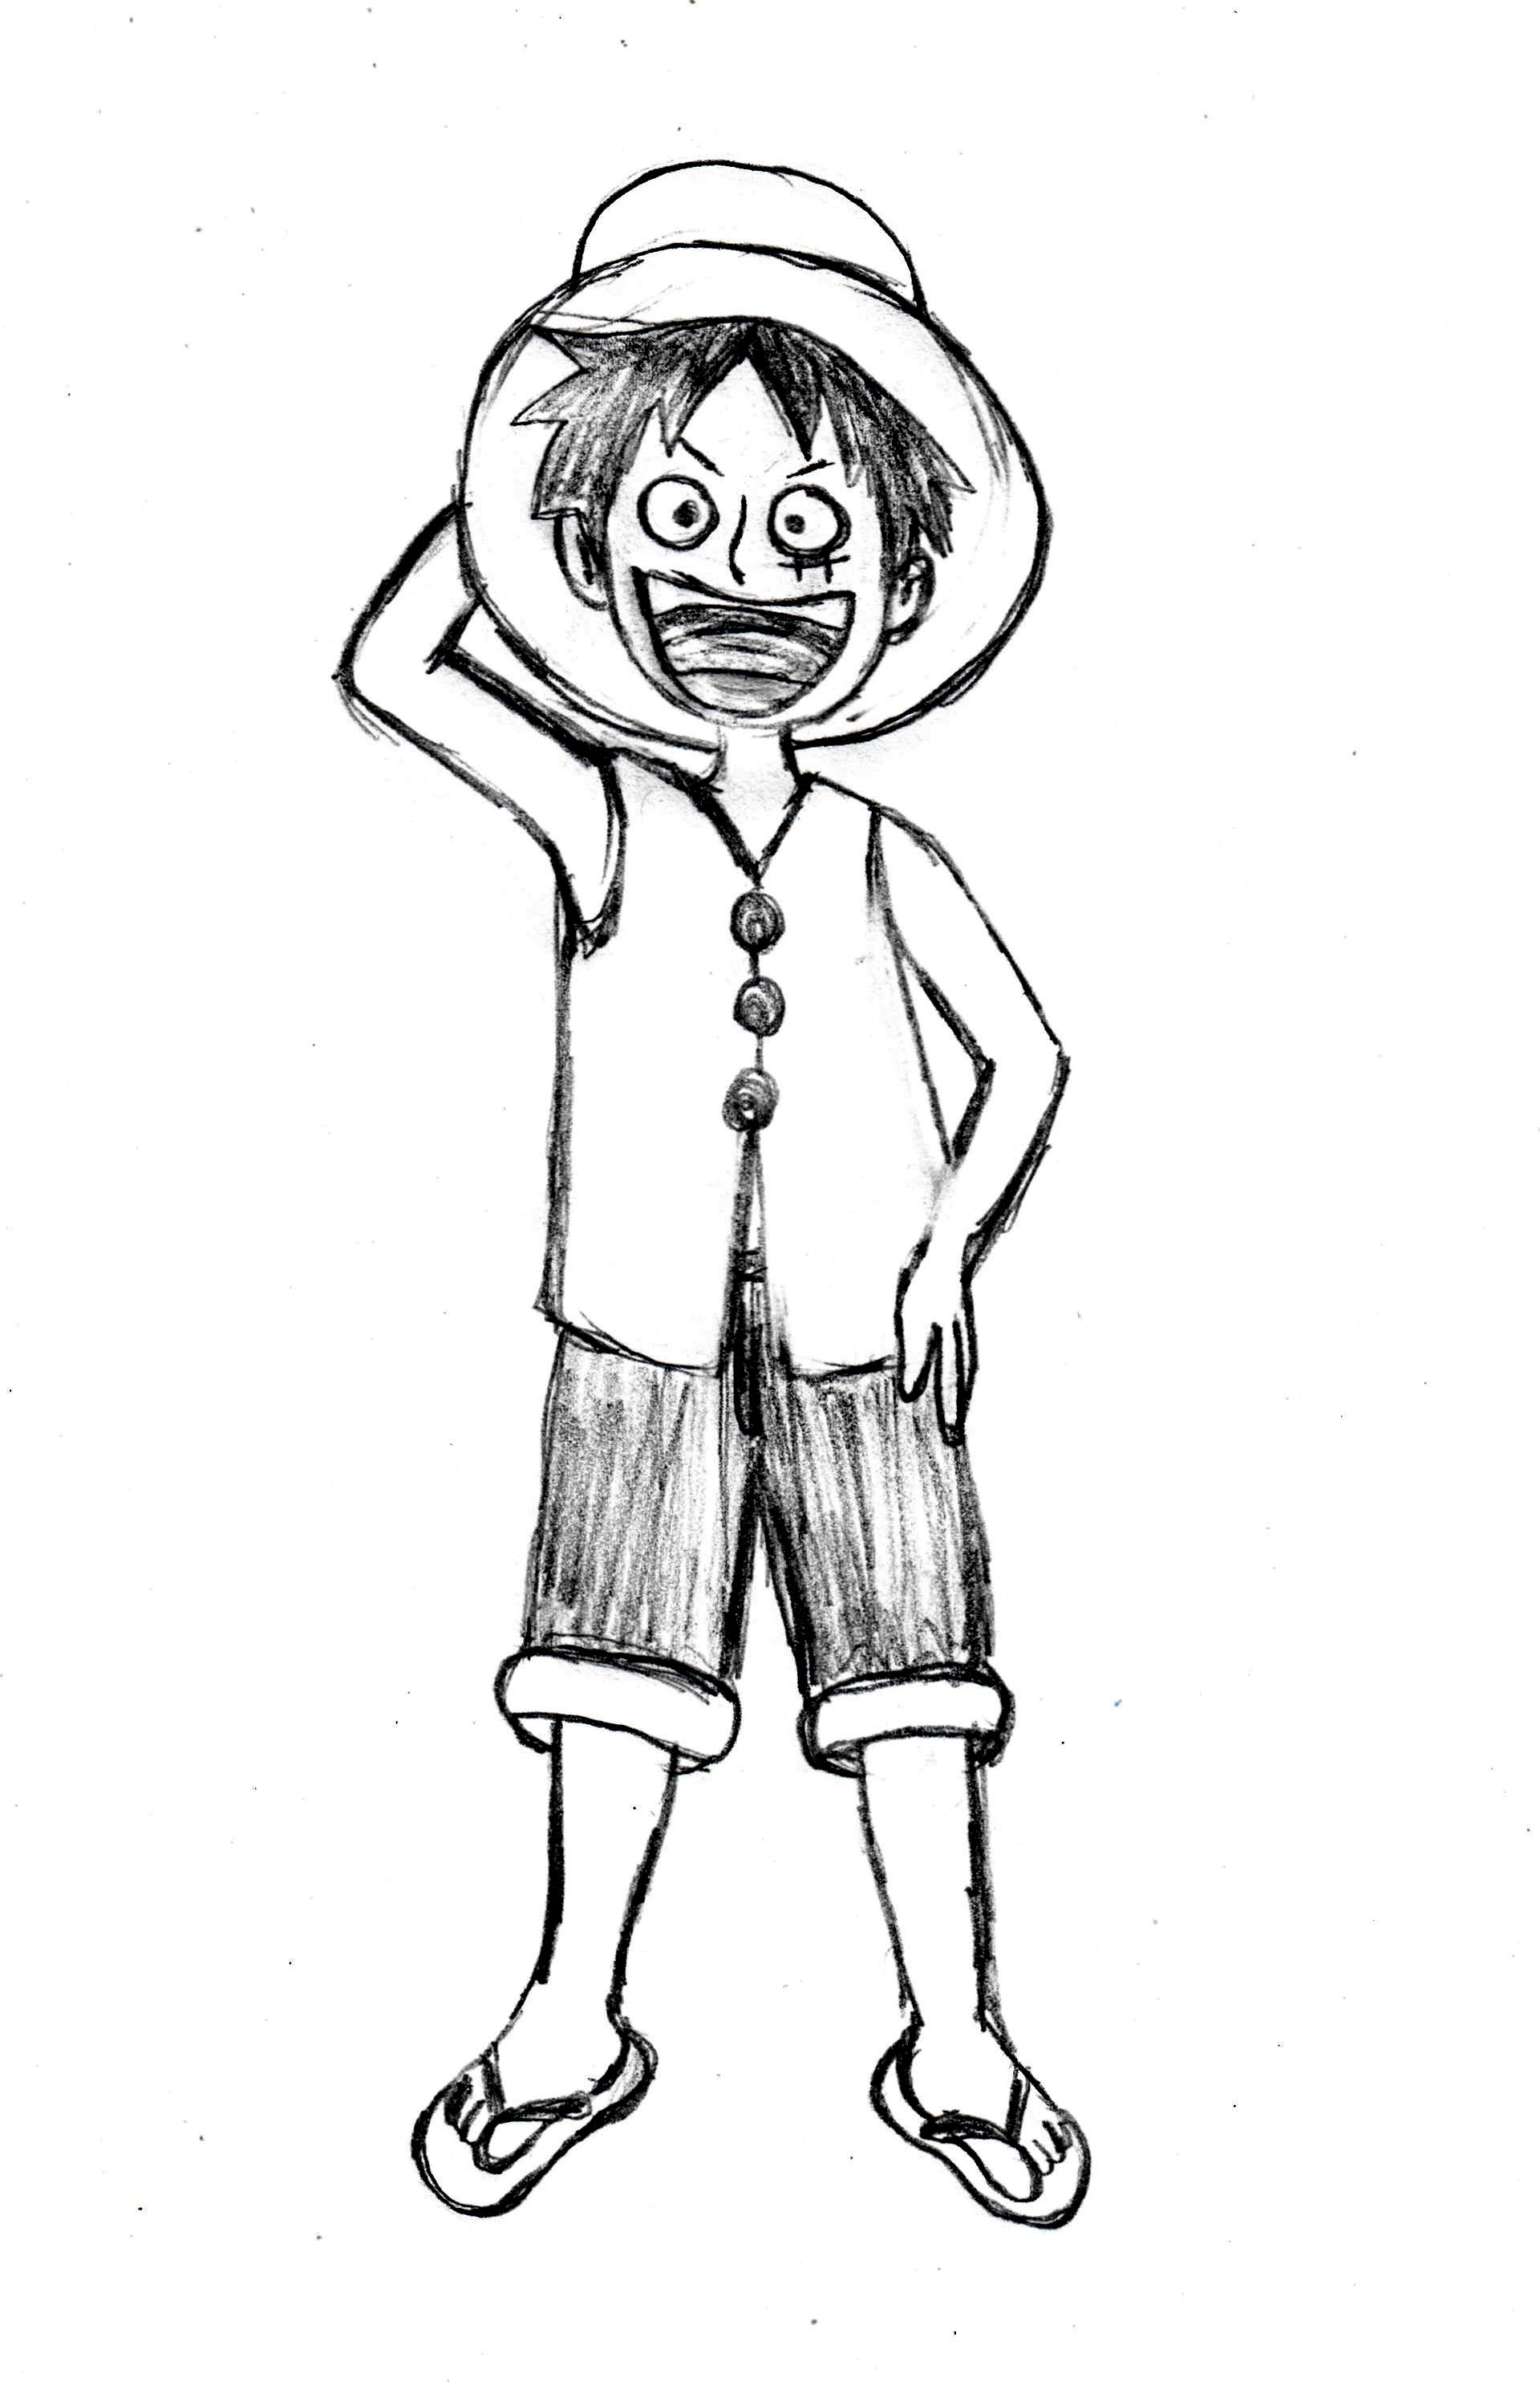 Step By Step Drawing Tutorial For Anime Manga Character Luffy One Piece Drawings Manga Characters Luffy